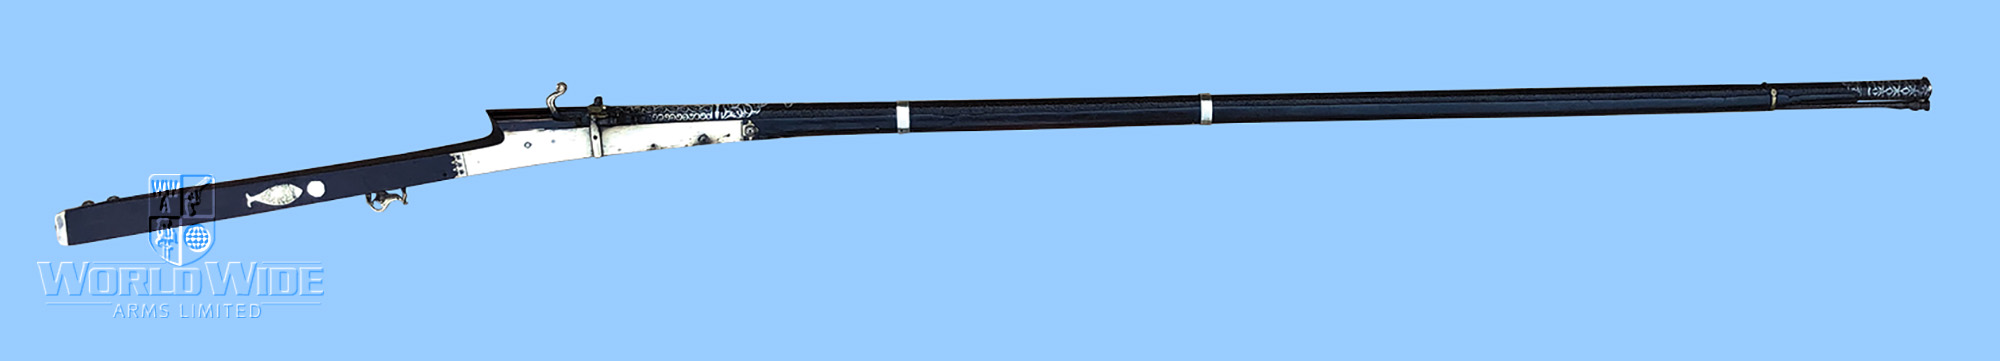 G404 Antique late 17th century Indian 25 bore Matchlock Torador - World Wide Arms